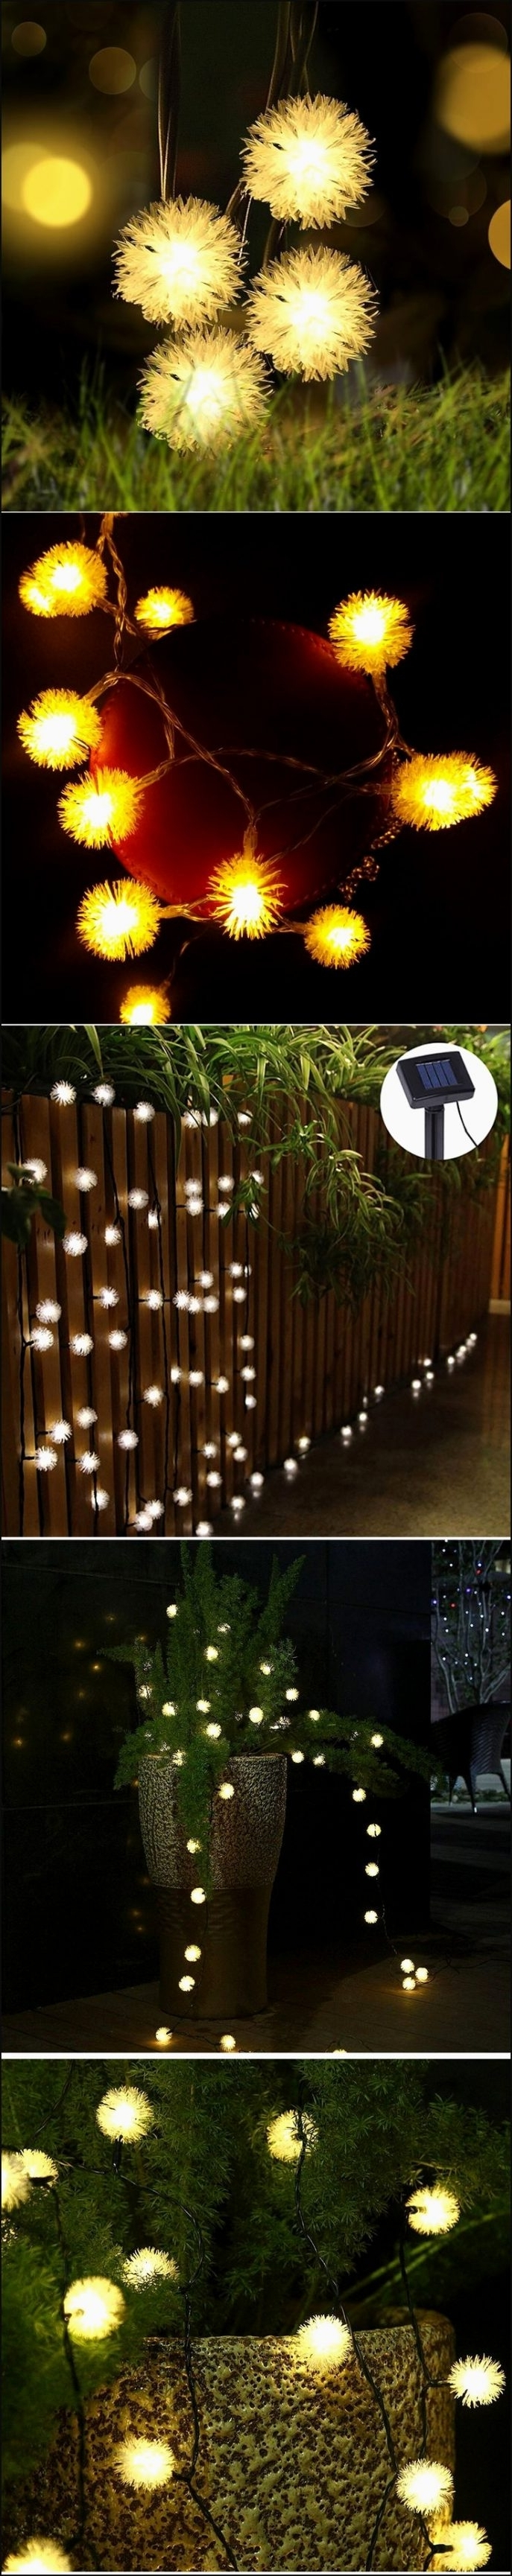 Fireplace : Outdoor Lighting Made In Usa Landscape Lighting Made In Throughout 2018 Made In Usa Outdoor Wall Lighting (View 4 of 20)